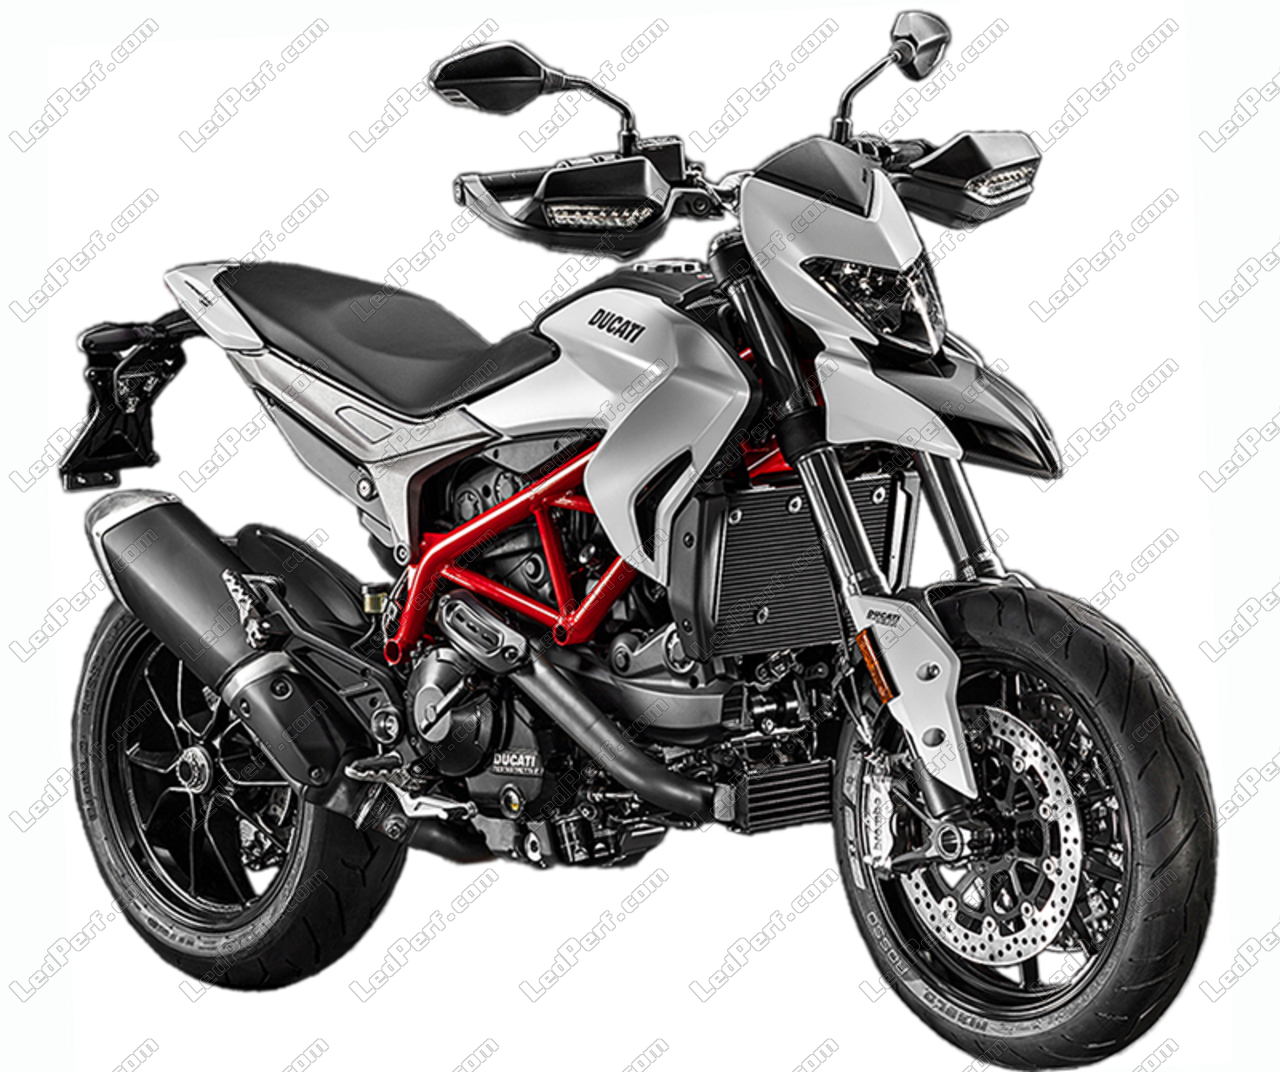 pack led license plate for ducati hypermotard 939. Black Bedroom Furniture Sets. Home Design Ideas